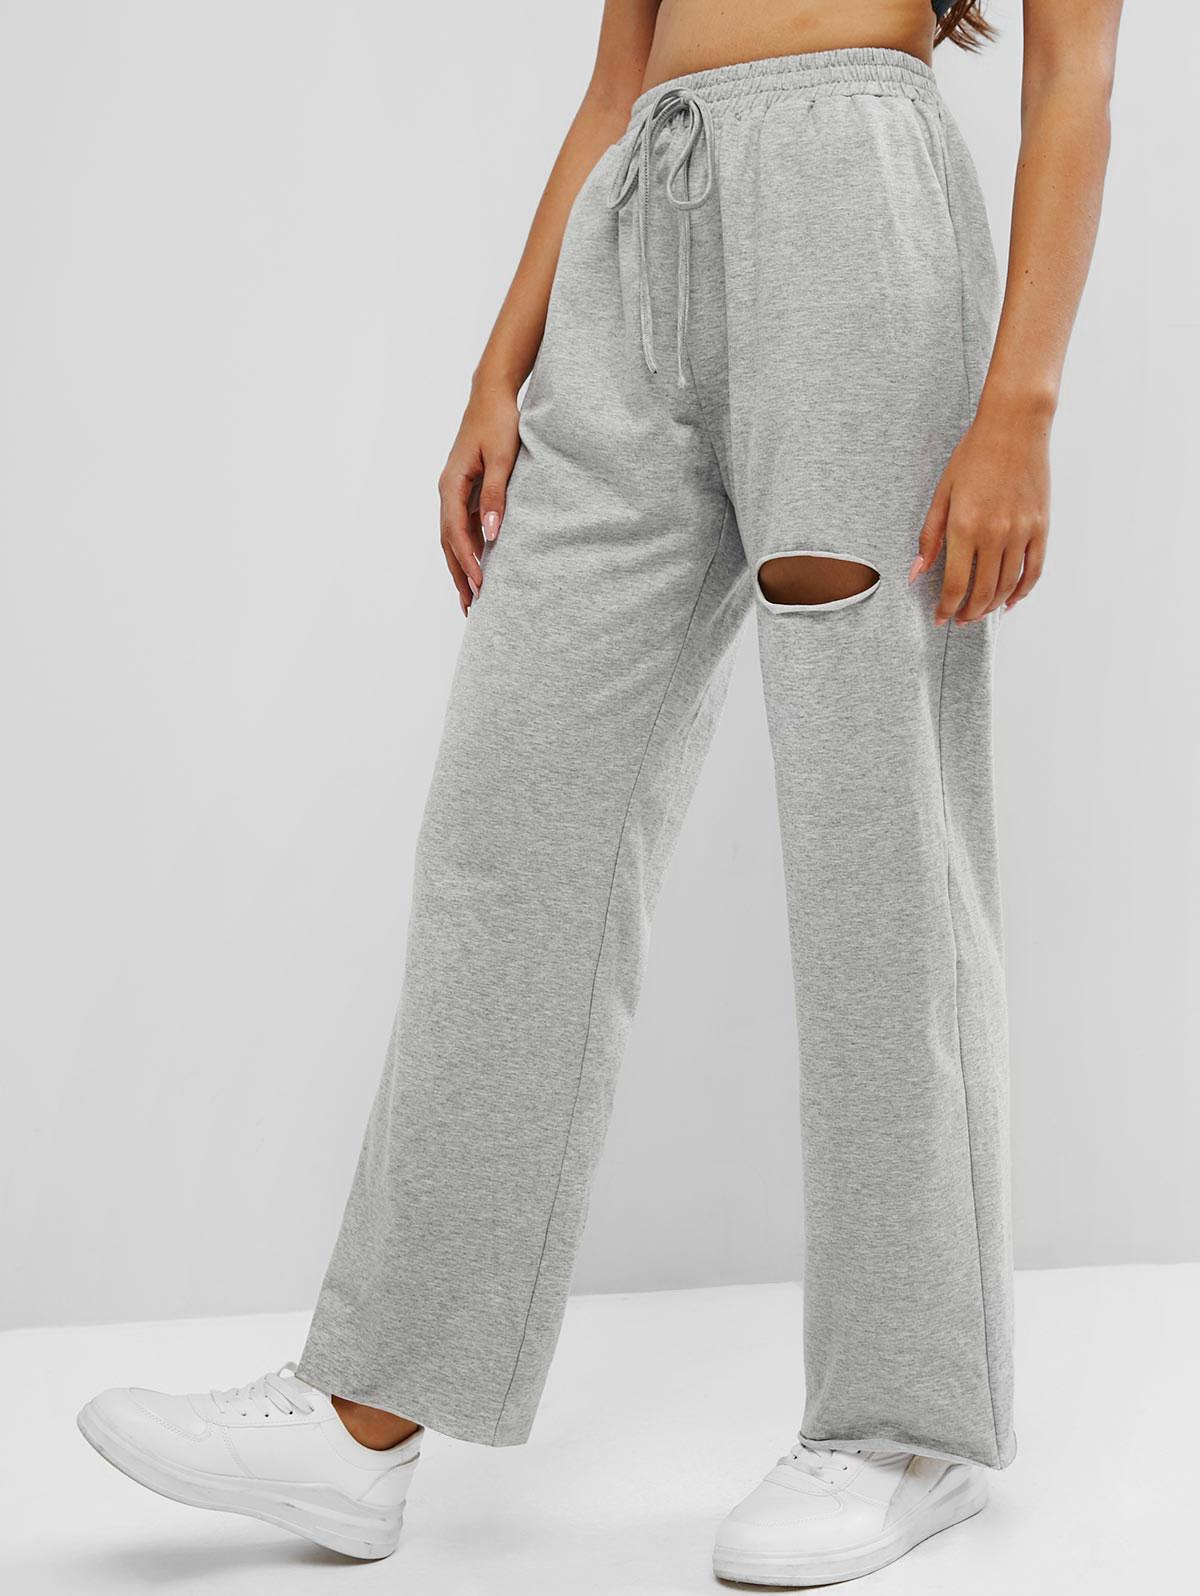 ZAFUL Knee Ripped High Waisted Pocket Straight Pants